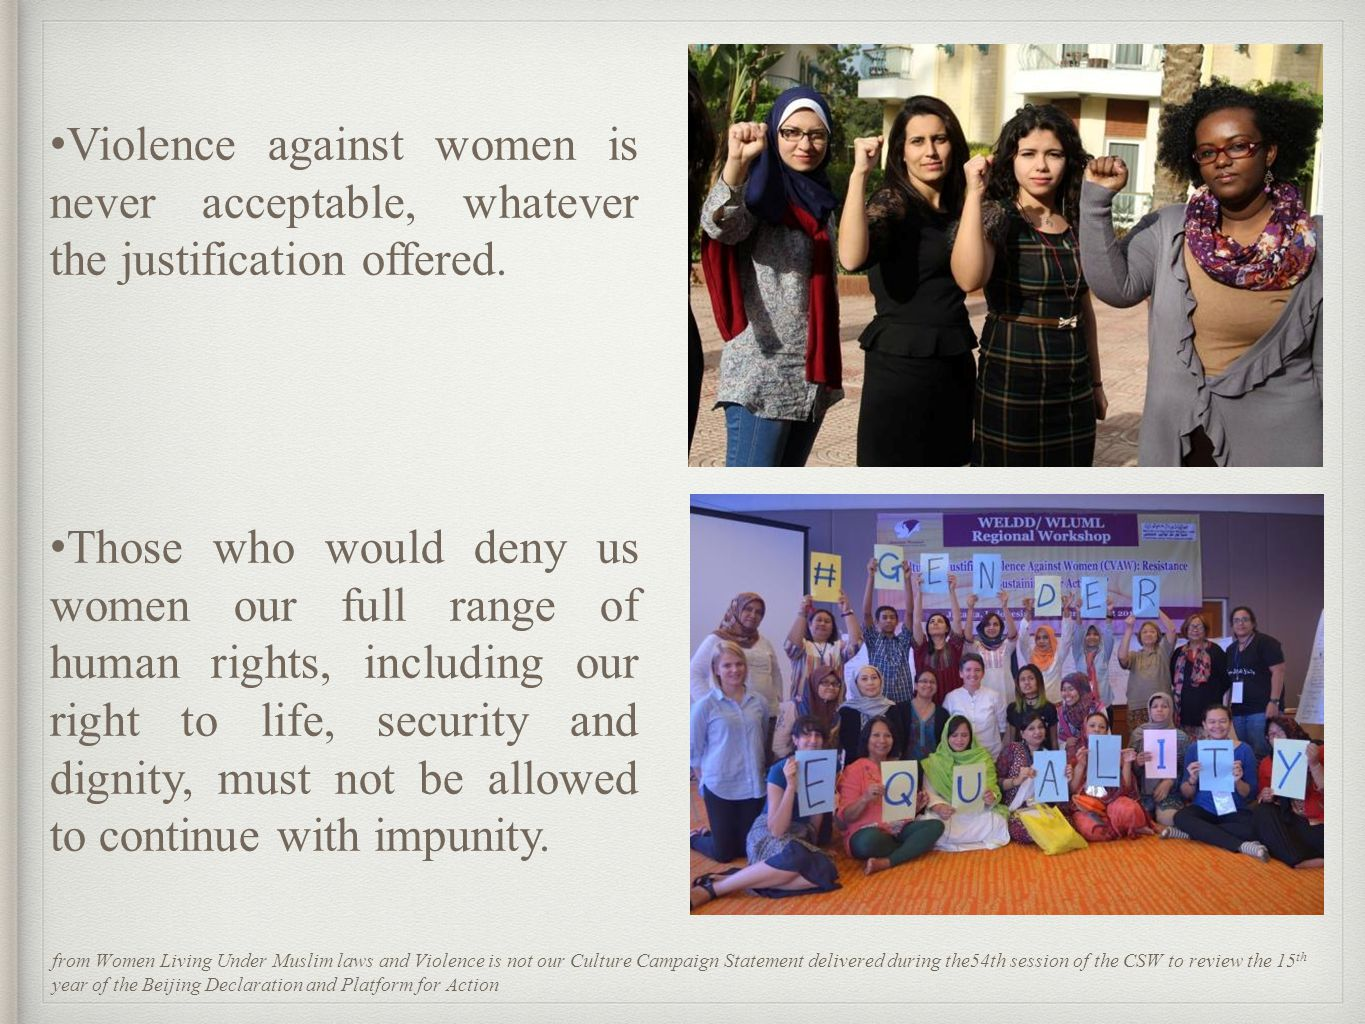 Violence against women is never acceptable, whatever the justification offered.